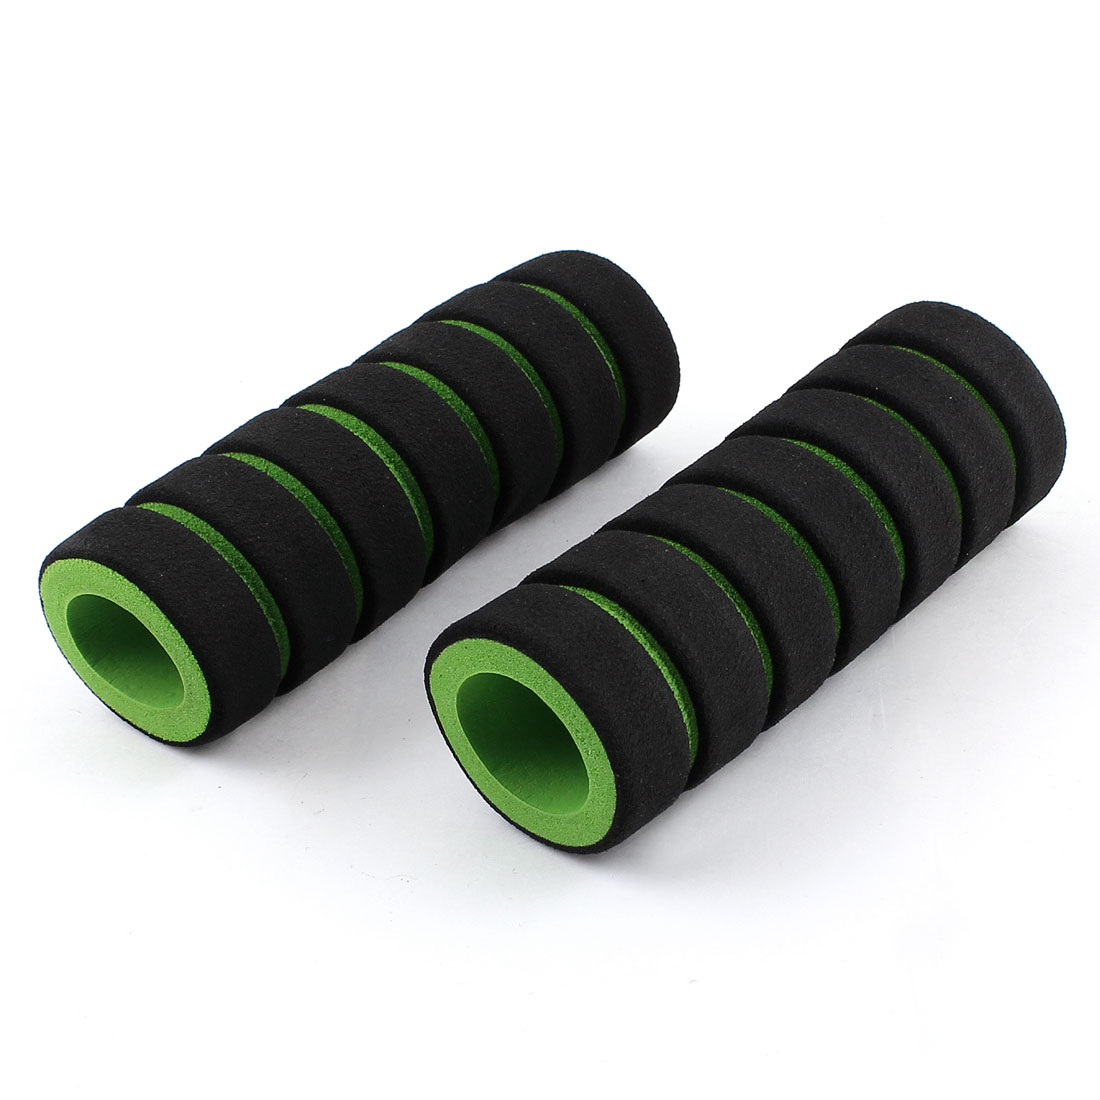 2 Pcs Soft Nonslip Sponge Handlebar Grips for Bicycle Bike Cycling